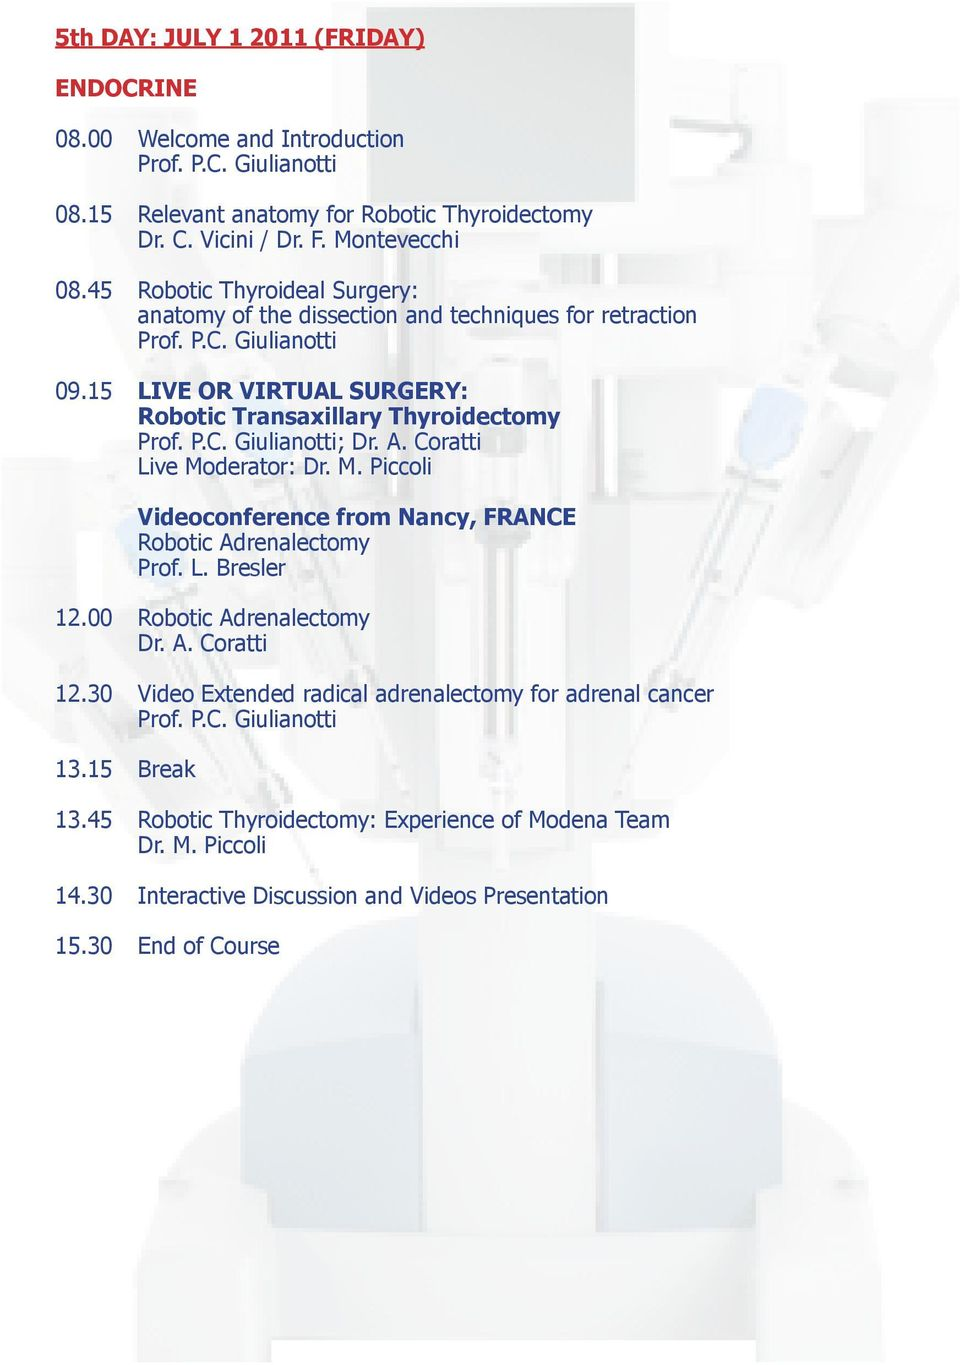 Coratti Live Moderator: Dr. M. Piccoli Videoconference from Nancy, FRANCE Robotic Adrenalectomy Prof. L. Bresler 12.00 Robotic Adrenalectomy Dr. A. Coratti 12.